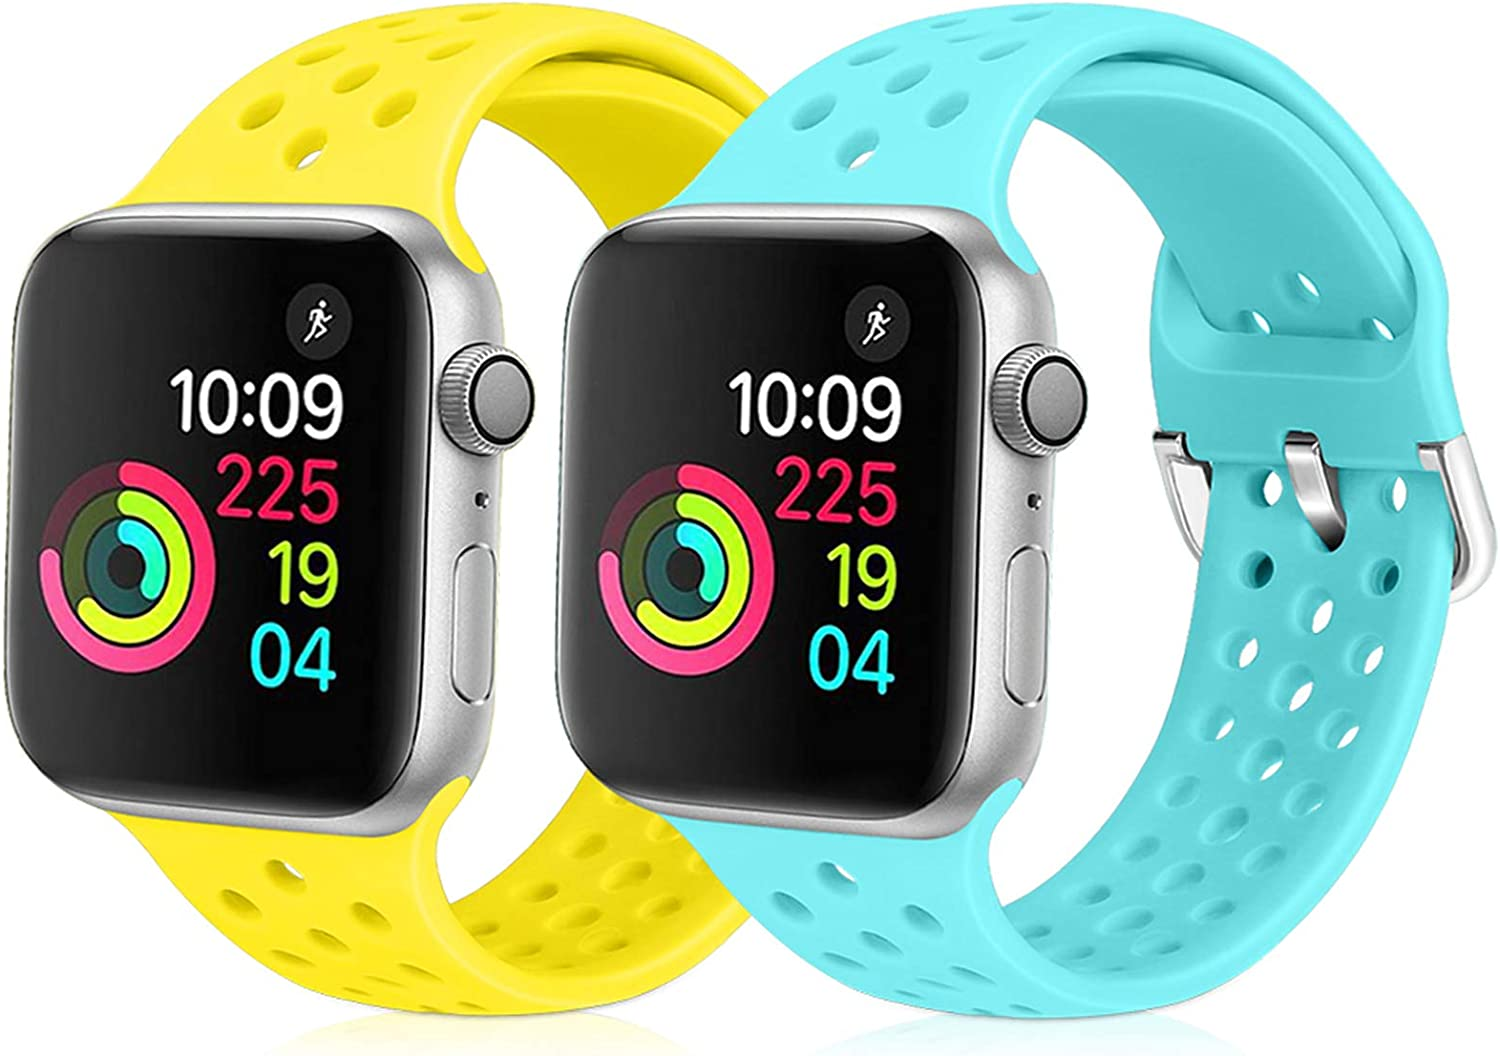 XFYELE Compatible with Apple Watch Band 42mm 44mm, Soft Silicone Replacement Strap Compatible for iWatch Series 6, 5, 4, 3, 2, 1 for Women and Men (Shiny Yellow & Sky Blue, 42mm/44mm)